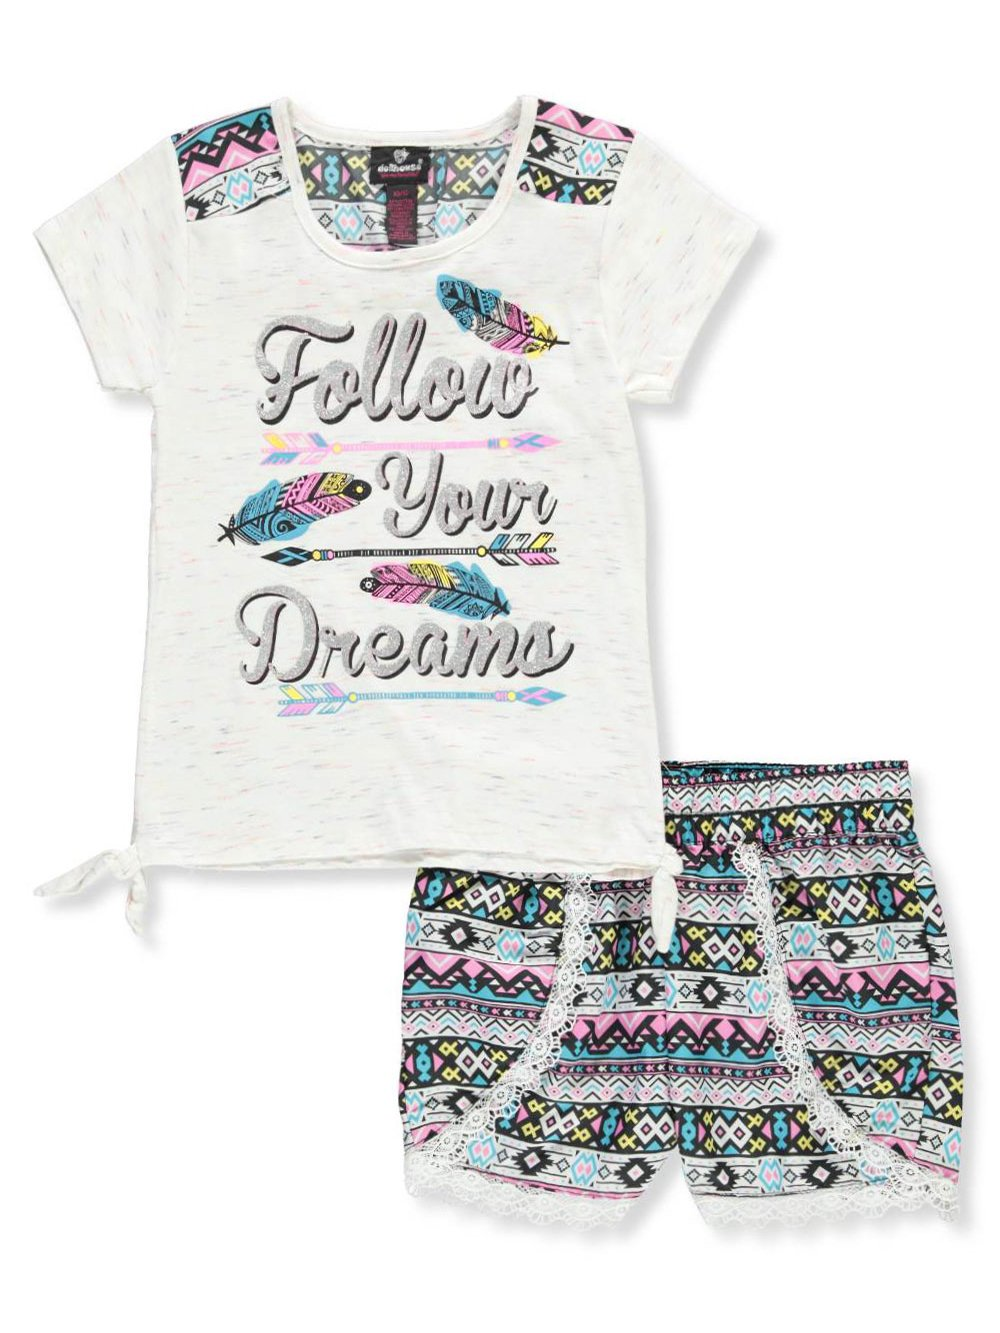 dollhouse Girls' 2-Piece Short Set Outfit 4